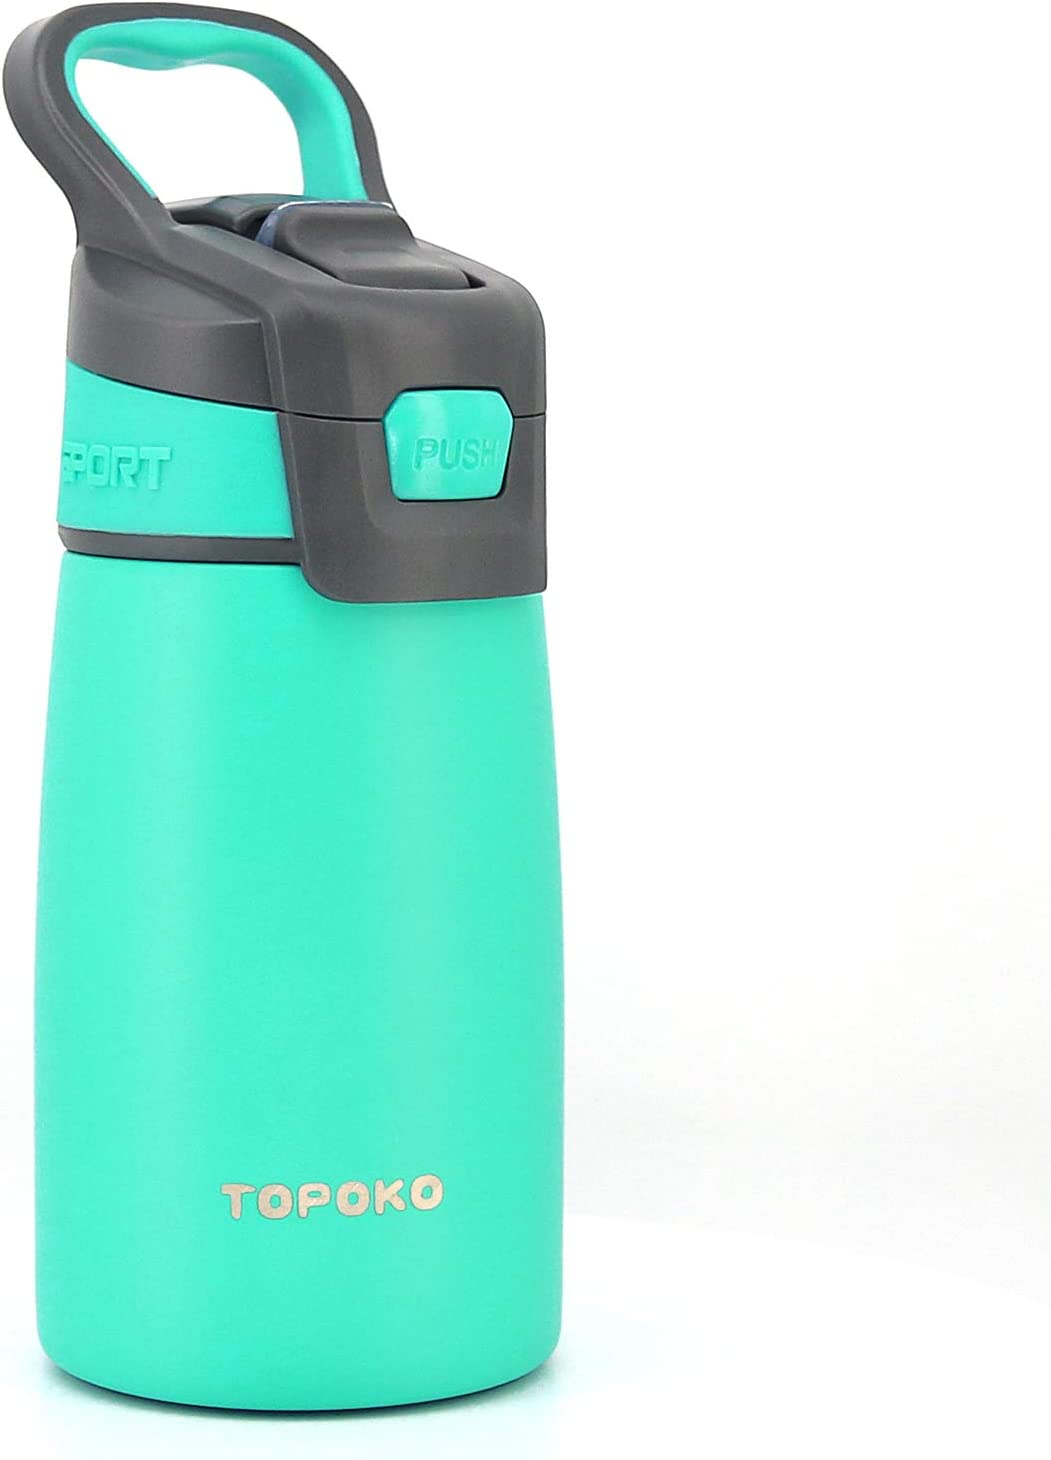 AUTO FLIP 12 OZ Stainless Steel Kids Water Bottle for Girls Double Wall Beverage Carry Kid Cup Vacuum Insulated Leak Proof Thermos Handle Spout BPA-Free Sports Bottle for Boys (Mint)